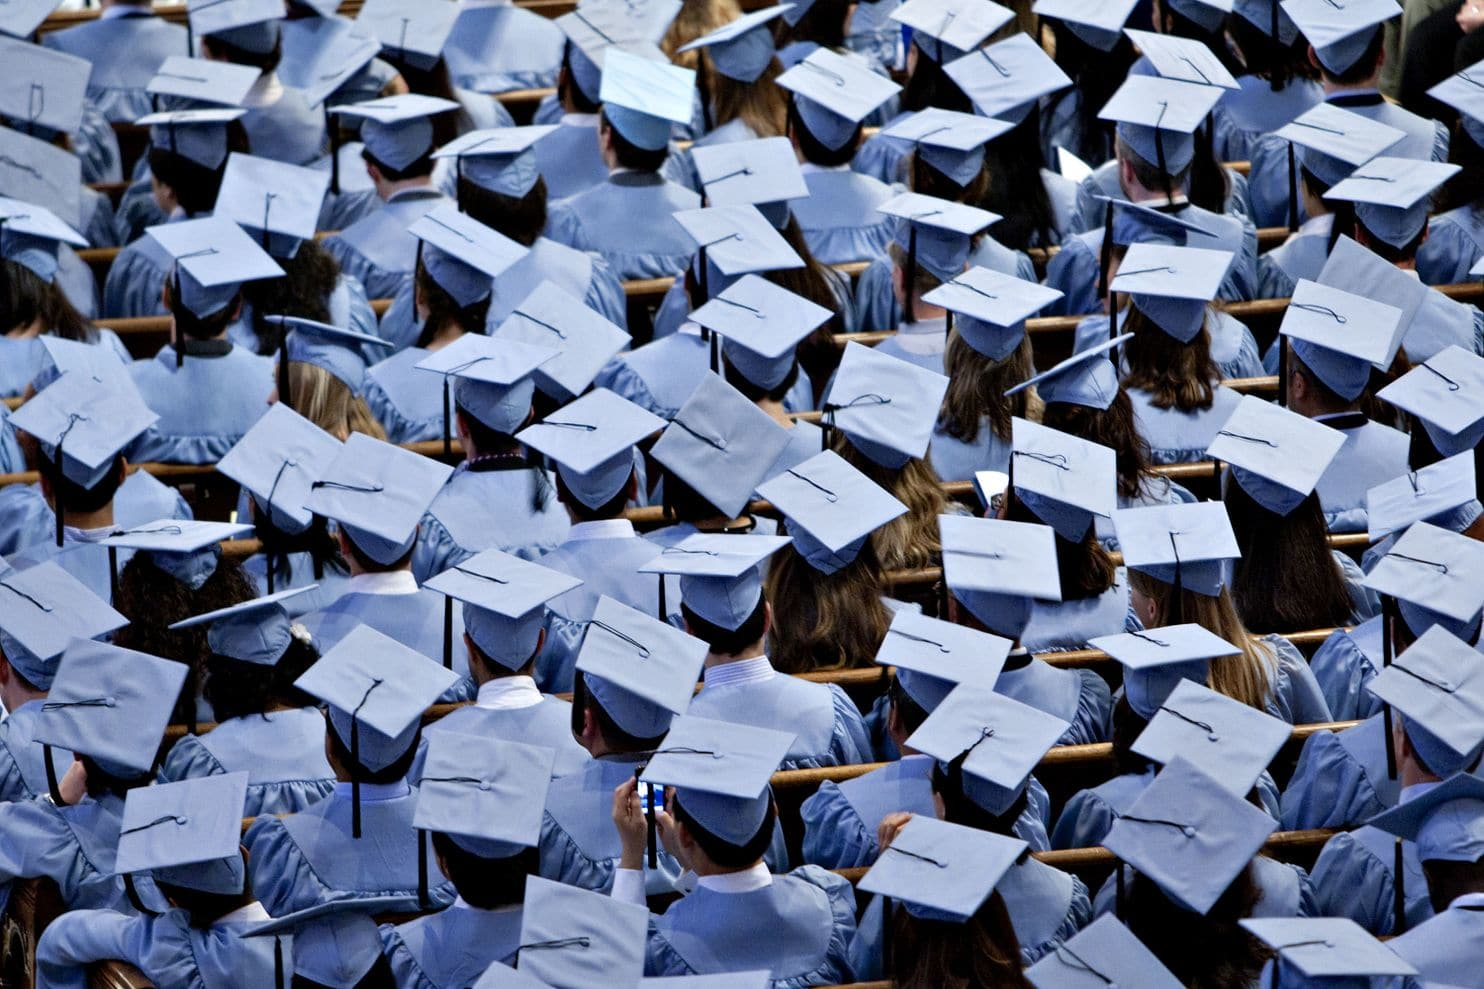 How the Great Recession changed higher education forever